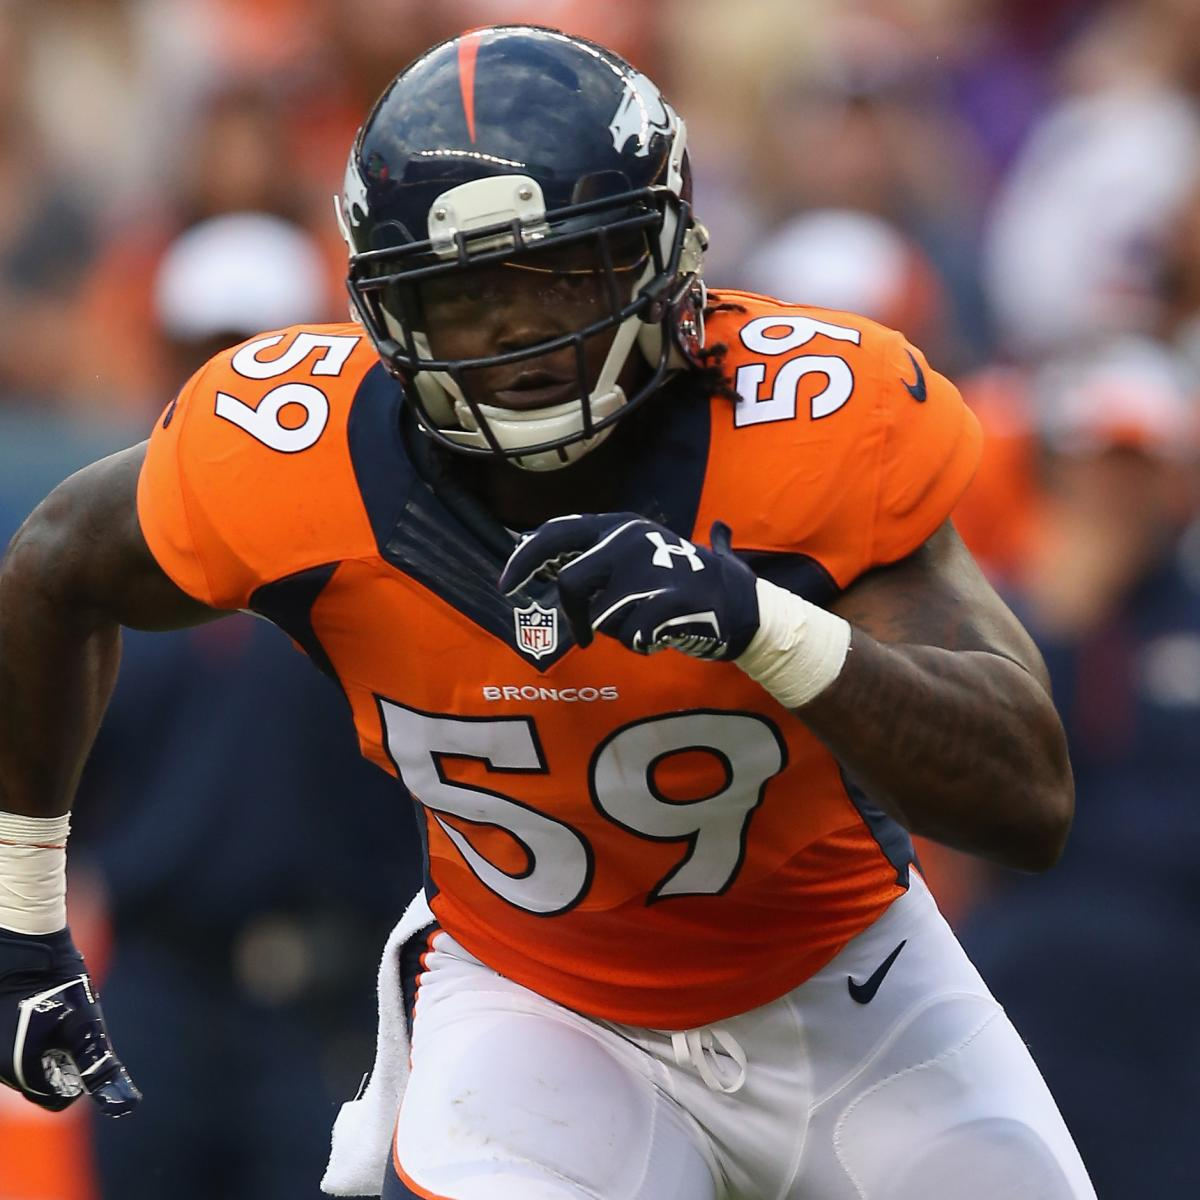 Denver News On Your Side: Danny Trevathan Injury: Updates On Broncos LB's Knee And